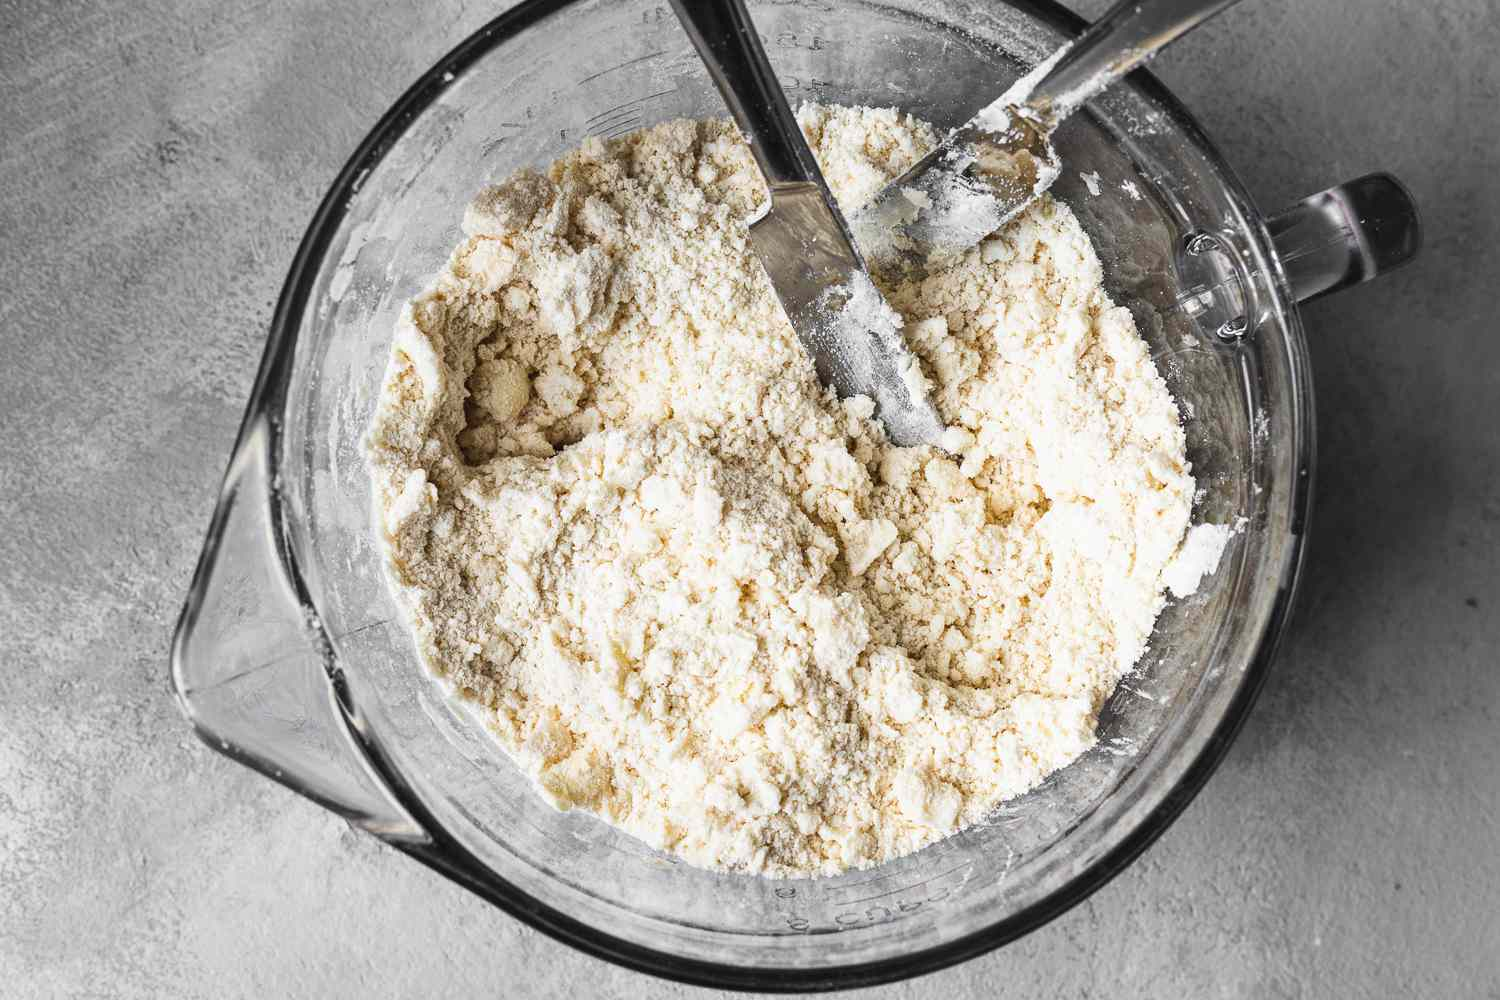 Lard and butter cut into the flour mixture with knives